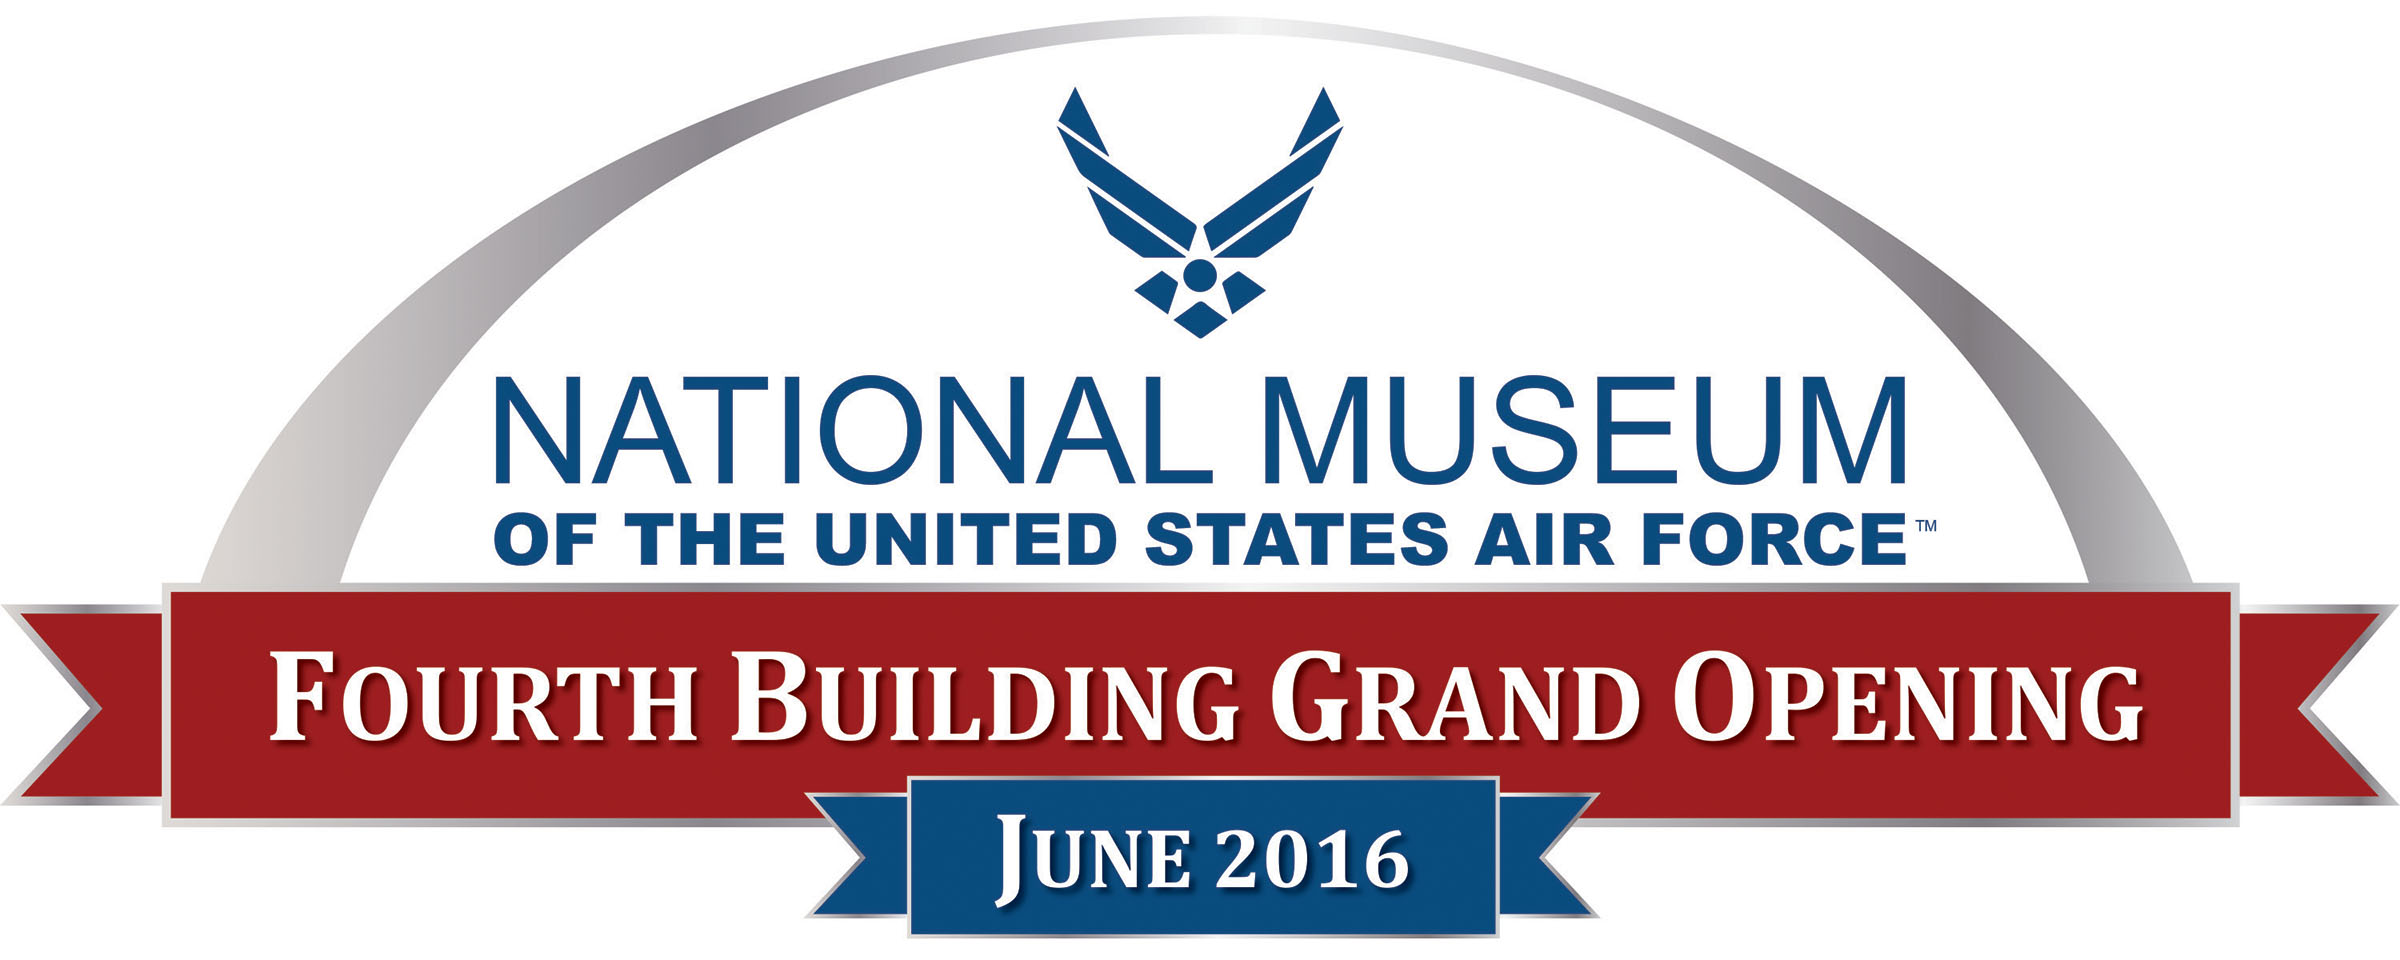 national museum of the u s air force 39 s fourth building to open with public ribbon cutting on. Black Bedroom Furniture Sets. Home Design Ideas